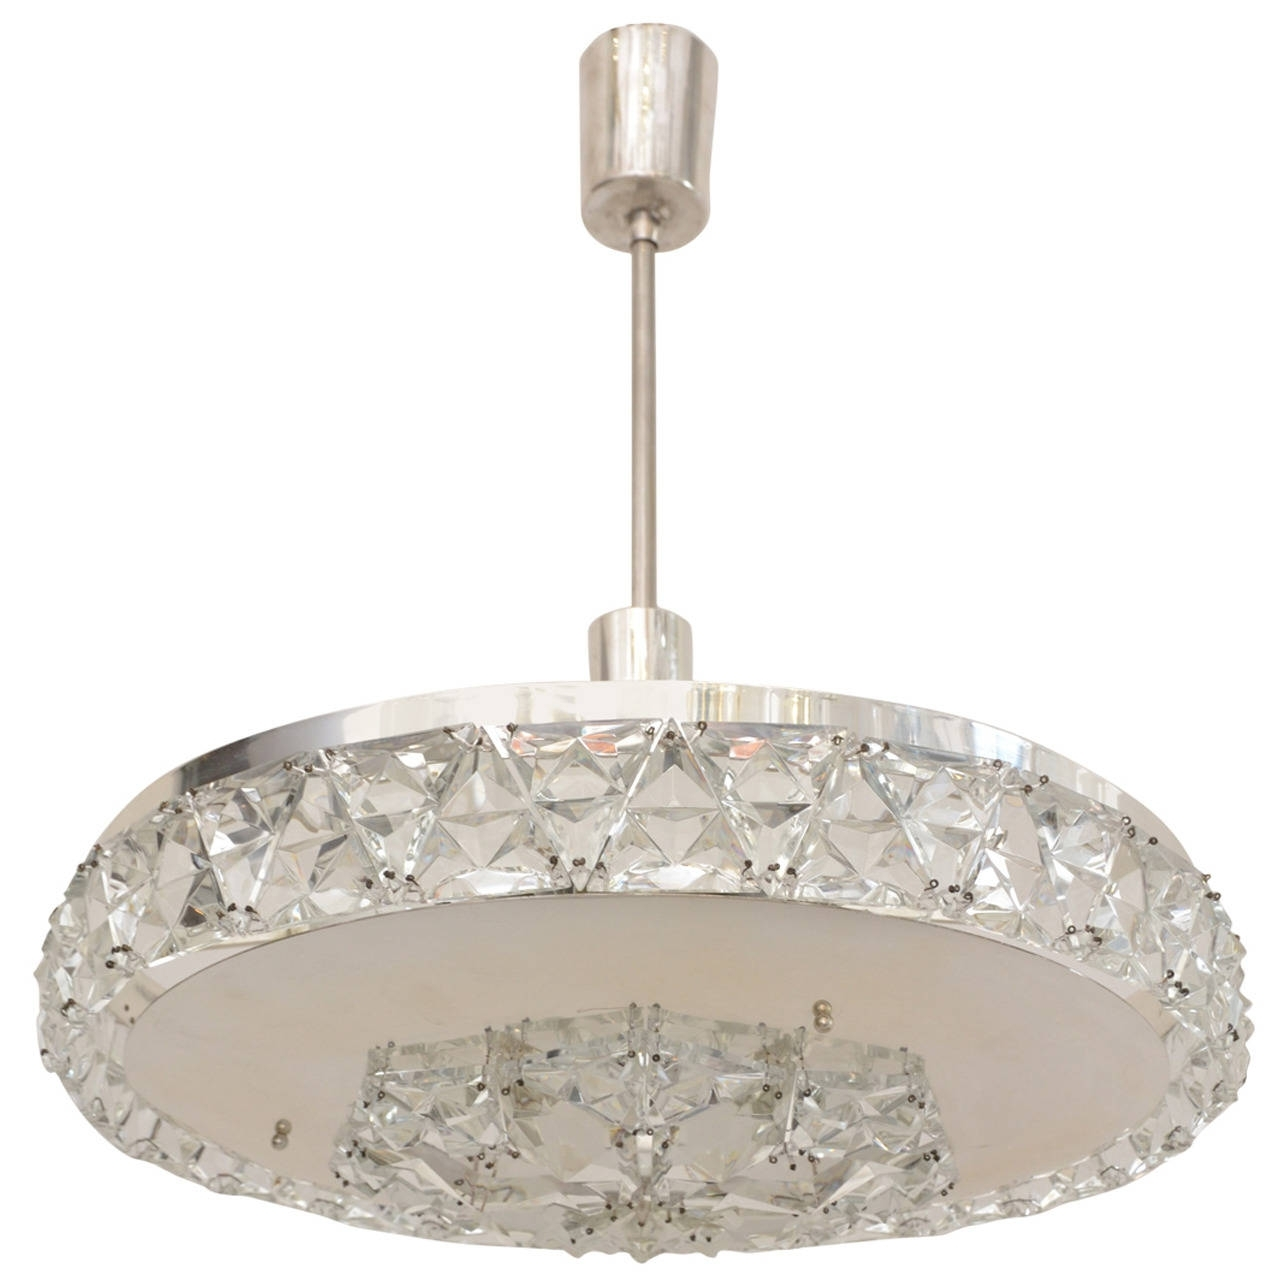 Silver Plated Bakalowits Vienna Faceted Crystal Chandelier, 1950s Within Most Recent Vienna Crystal Chandeliers (View 8 of 20)